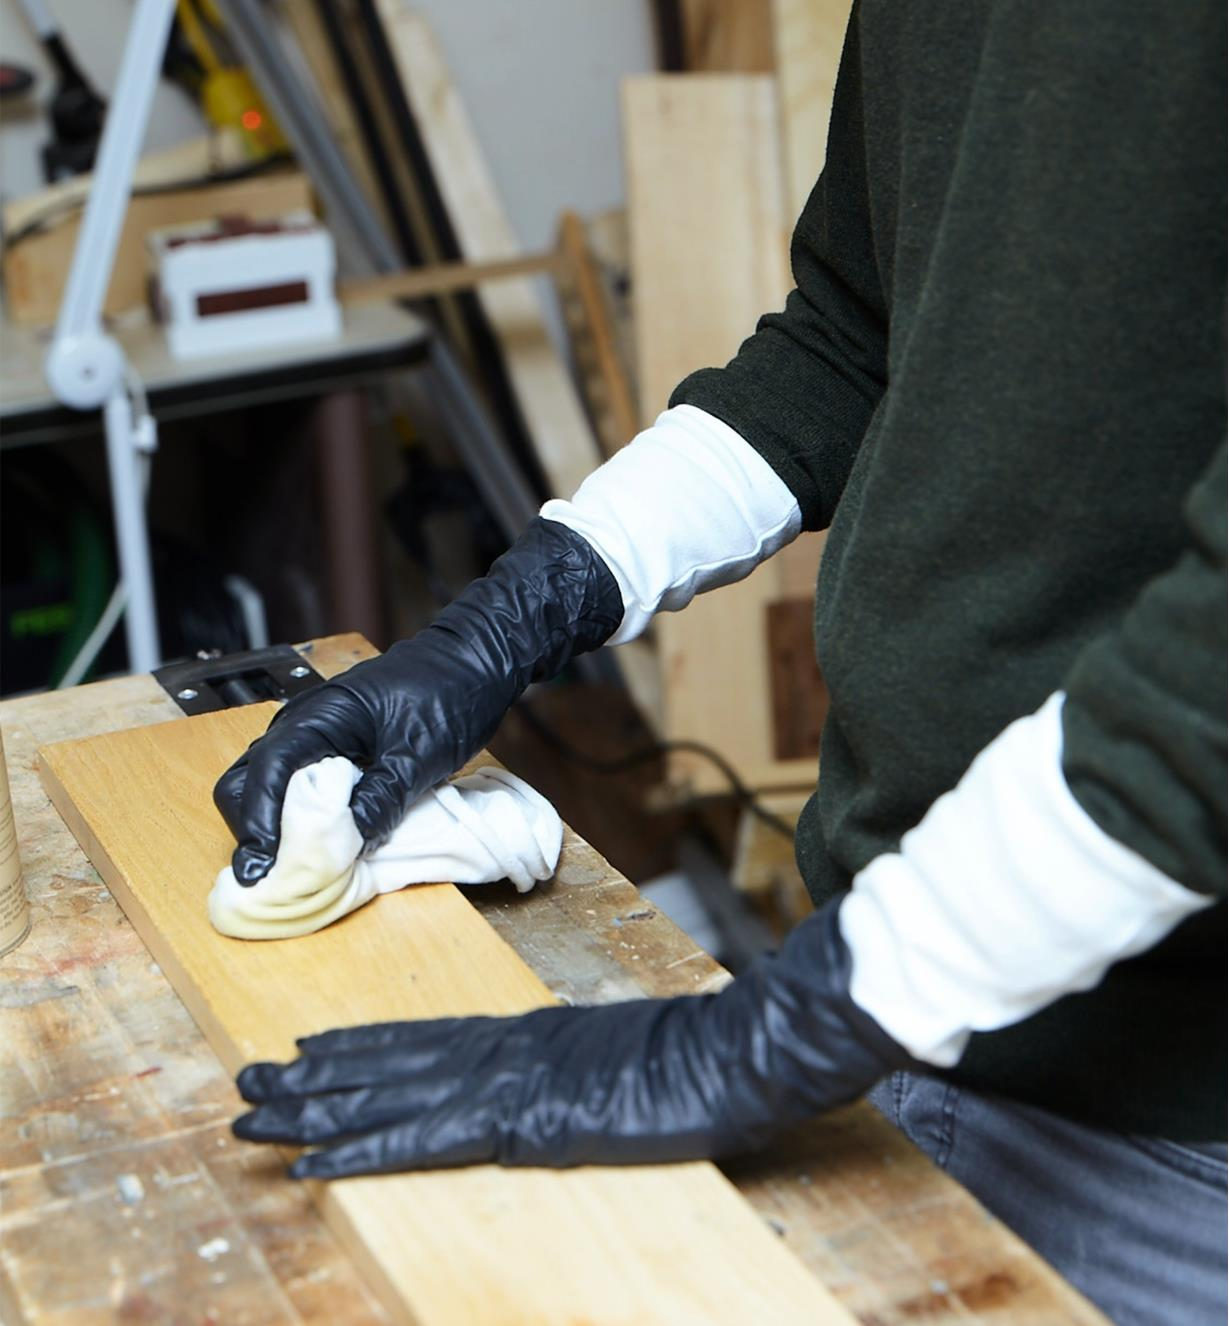 A woodworker wearing glove liners under nitrile gloves while staining a board